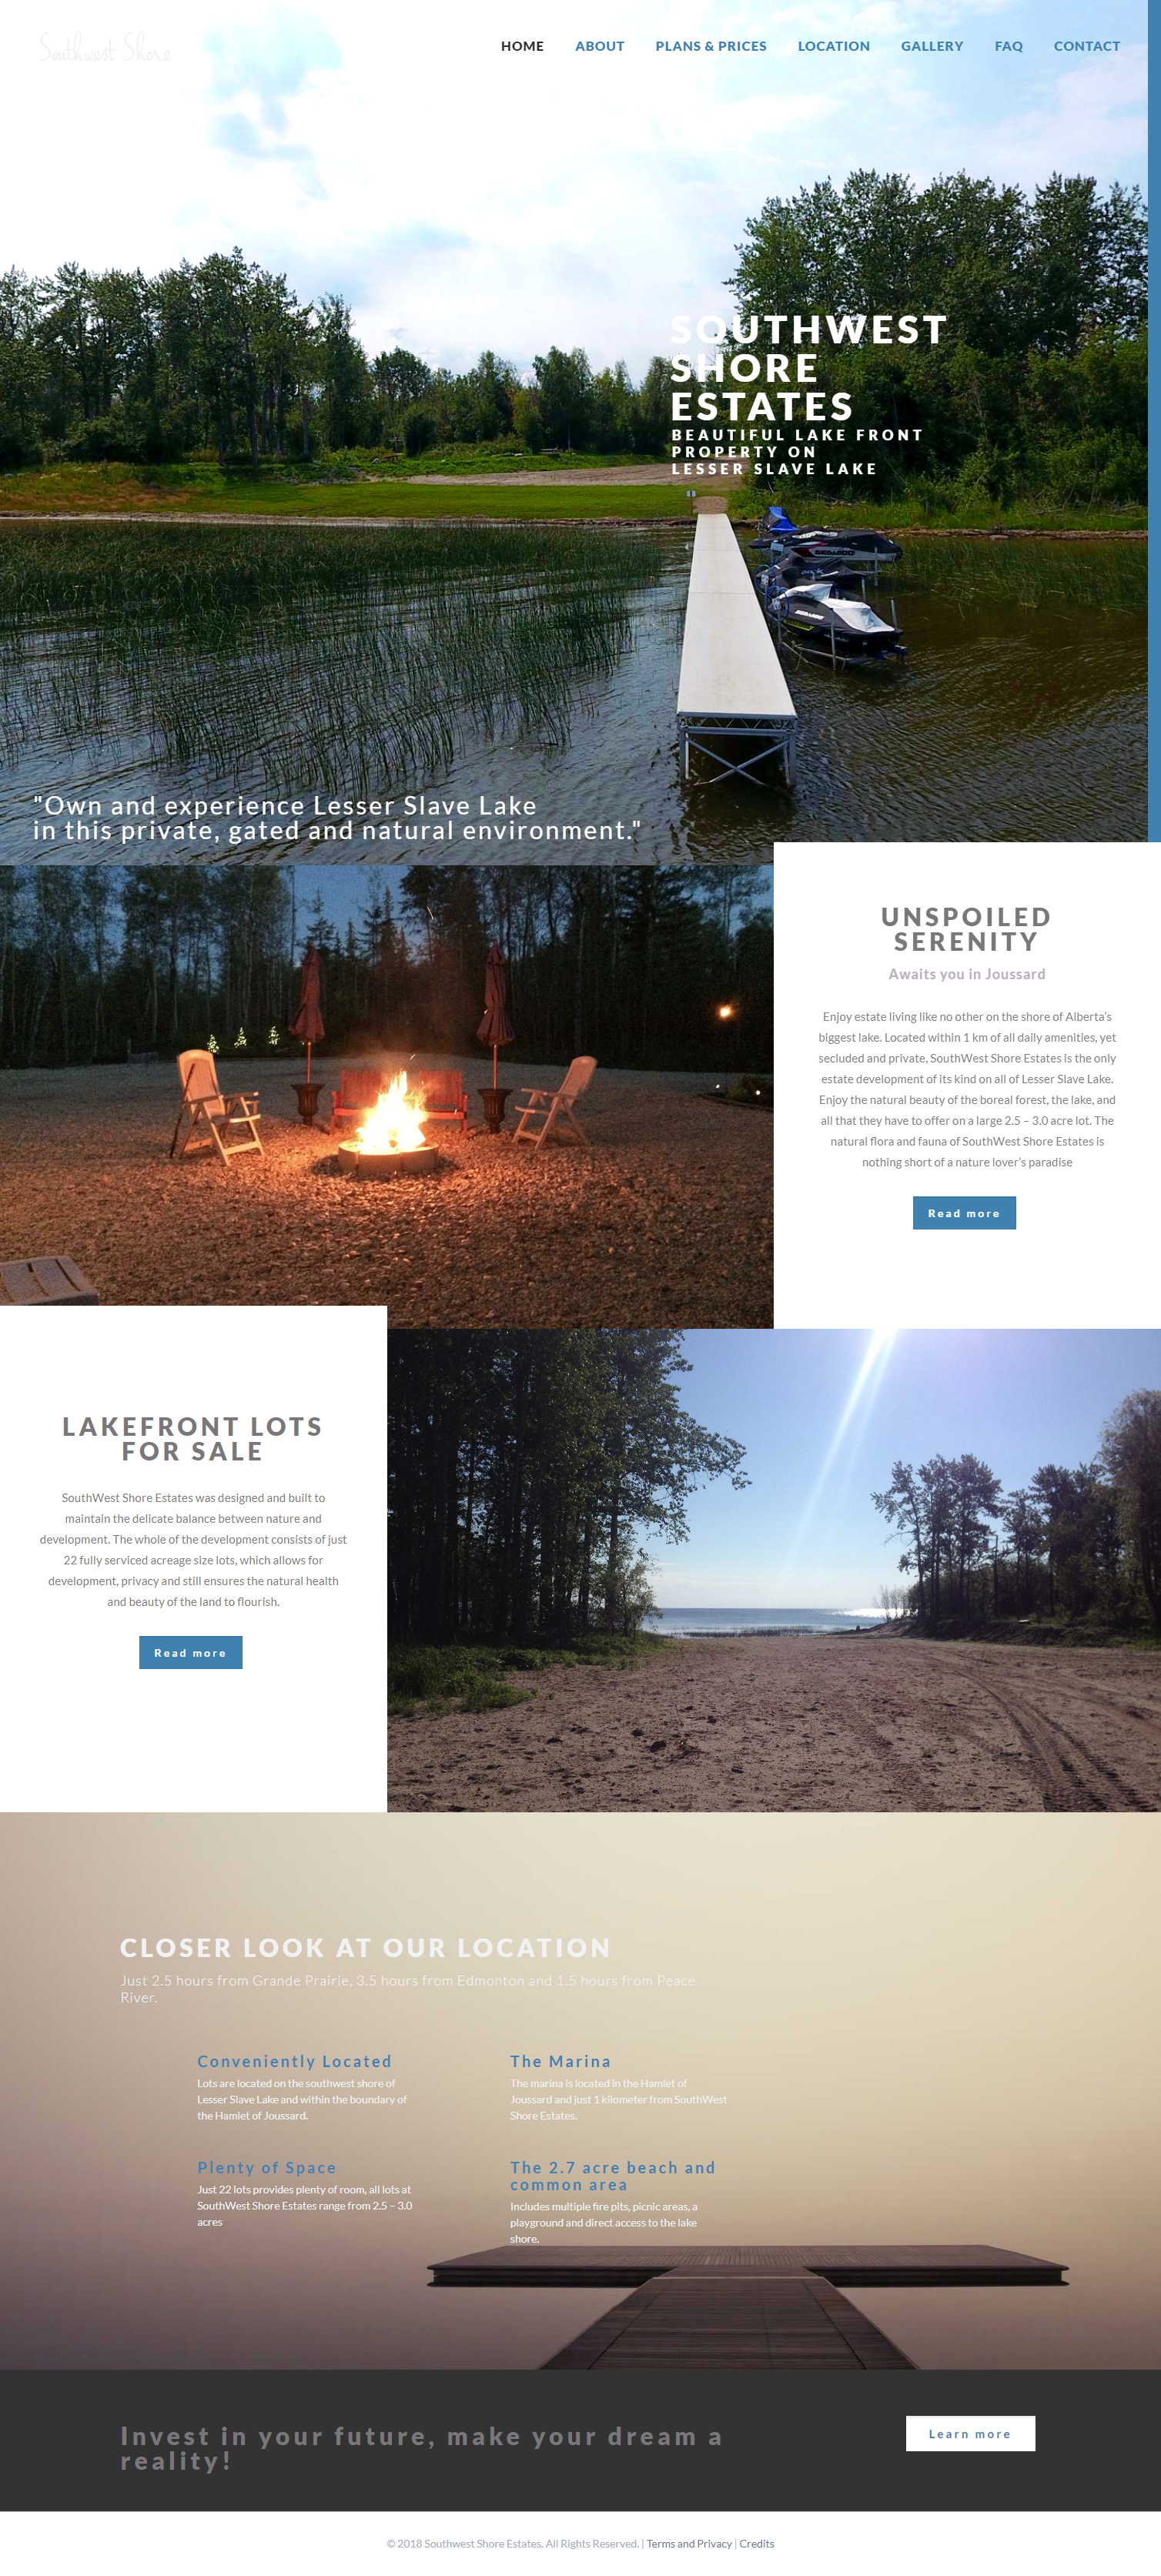 Southwest Shore Estates Web Design By Sixo Media